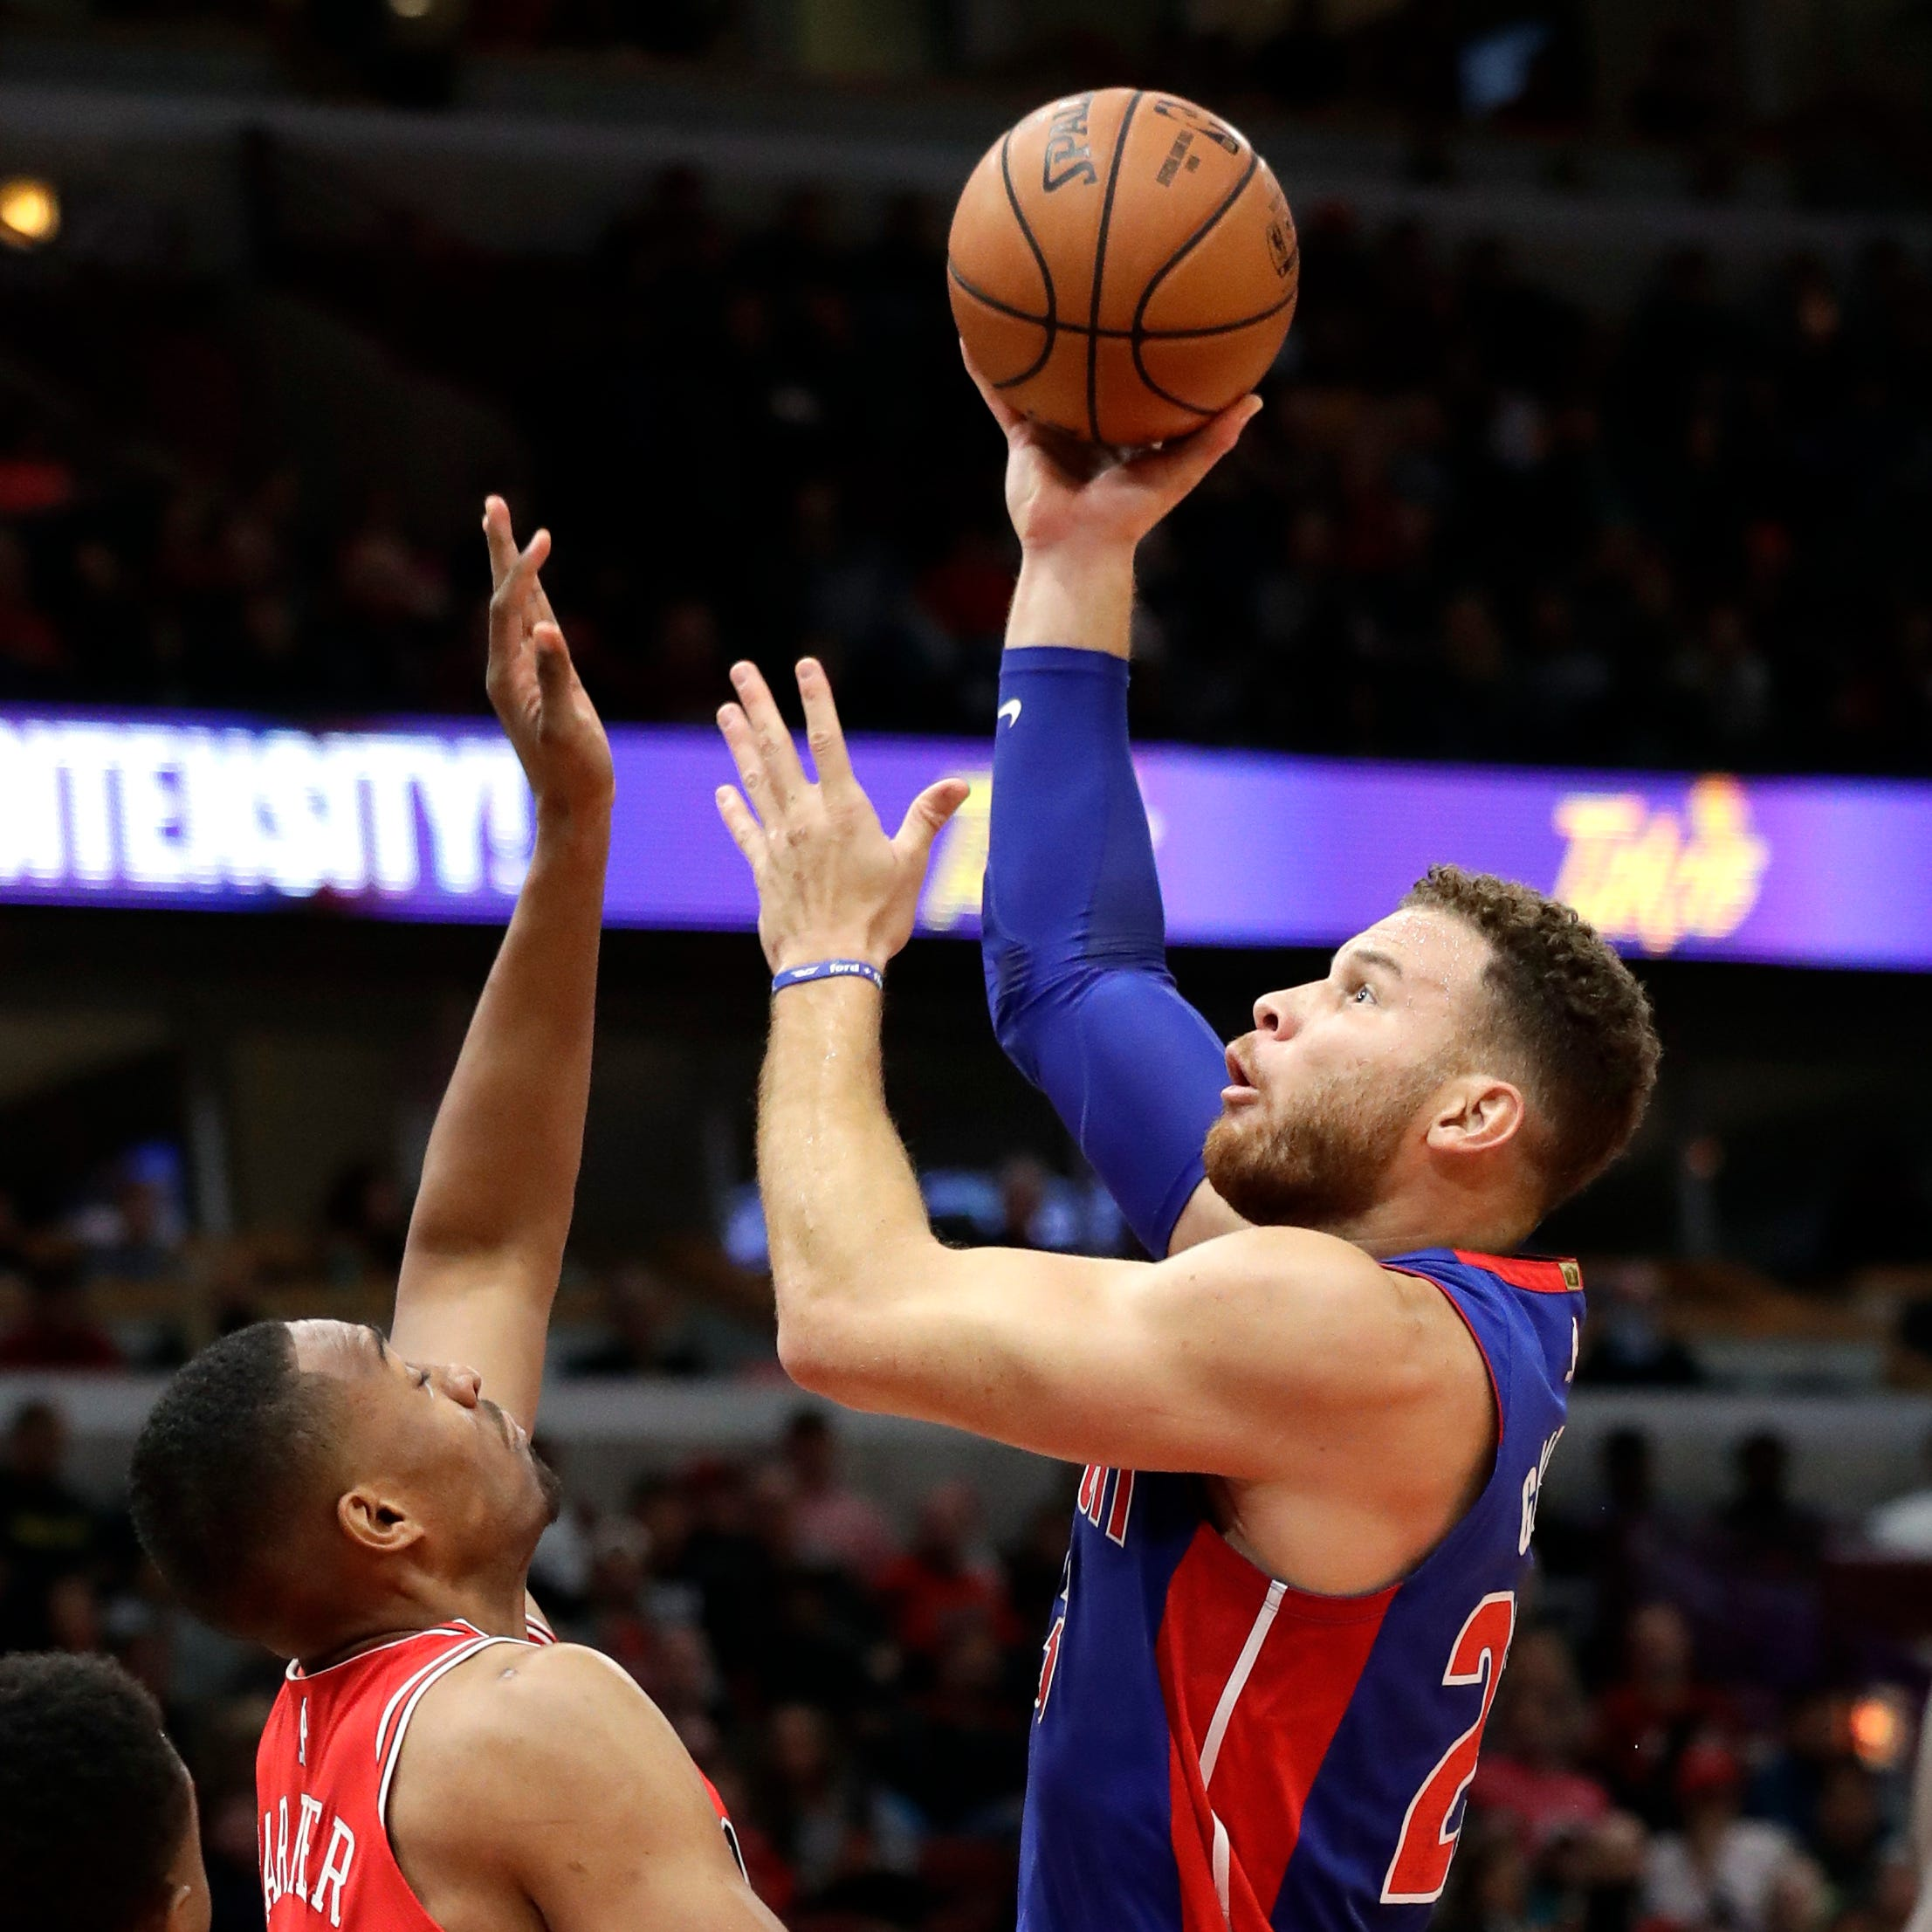 Ish Smith's layup sends Detroit Pistons to victory over Bulls, 118-116